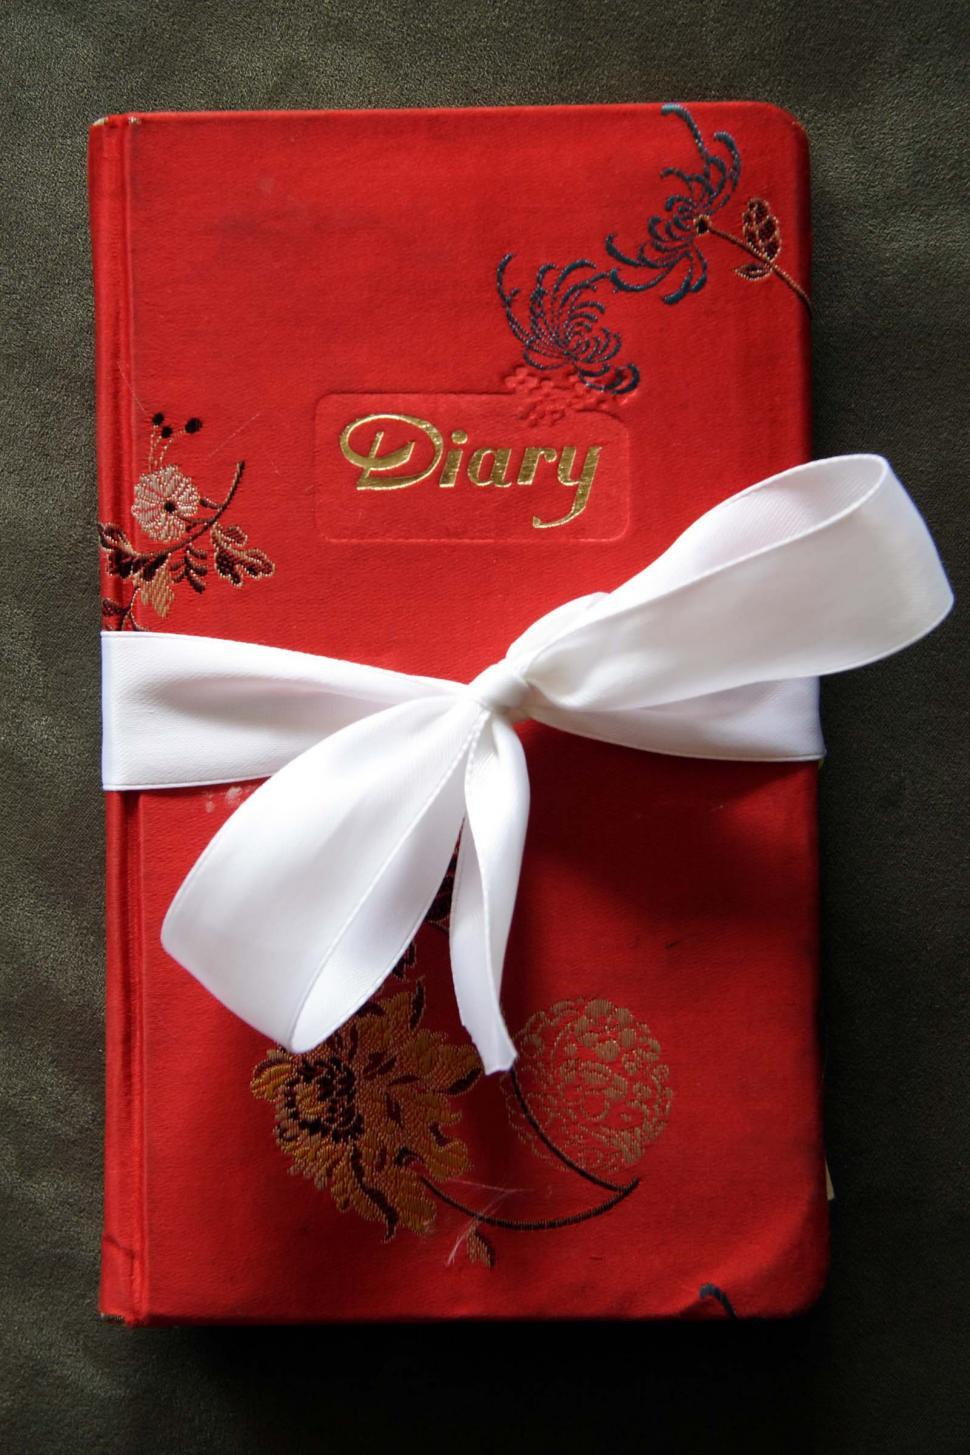 Download Free Stock Photo of Red Diary Book with White Bow